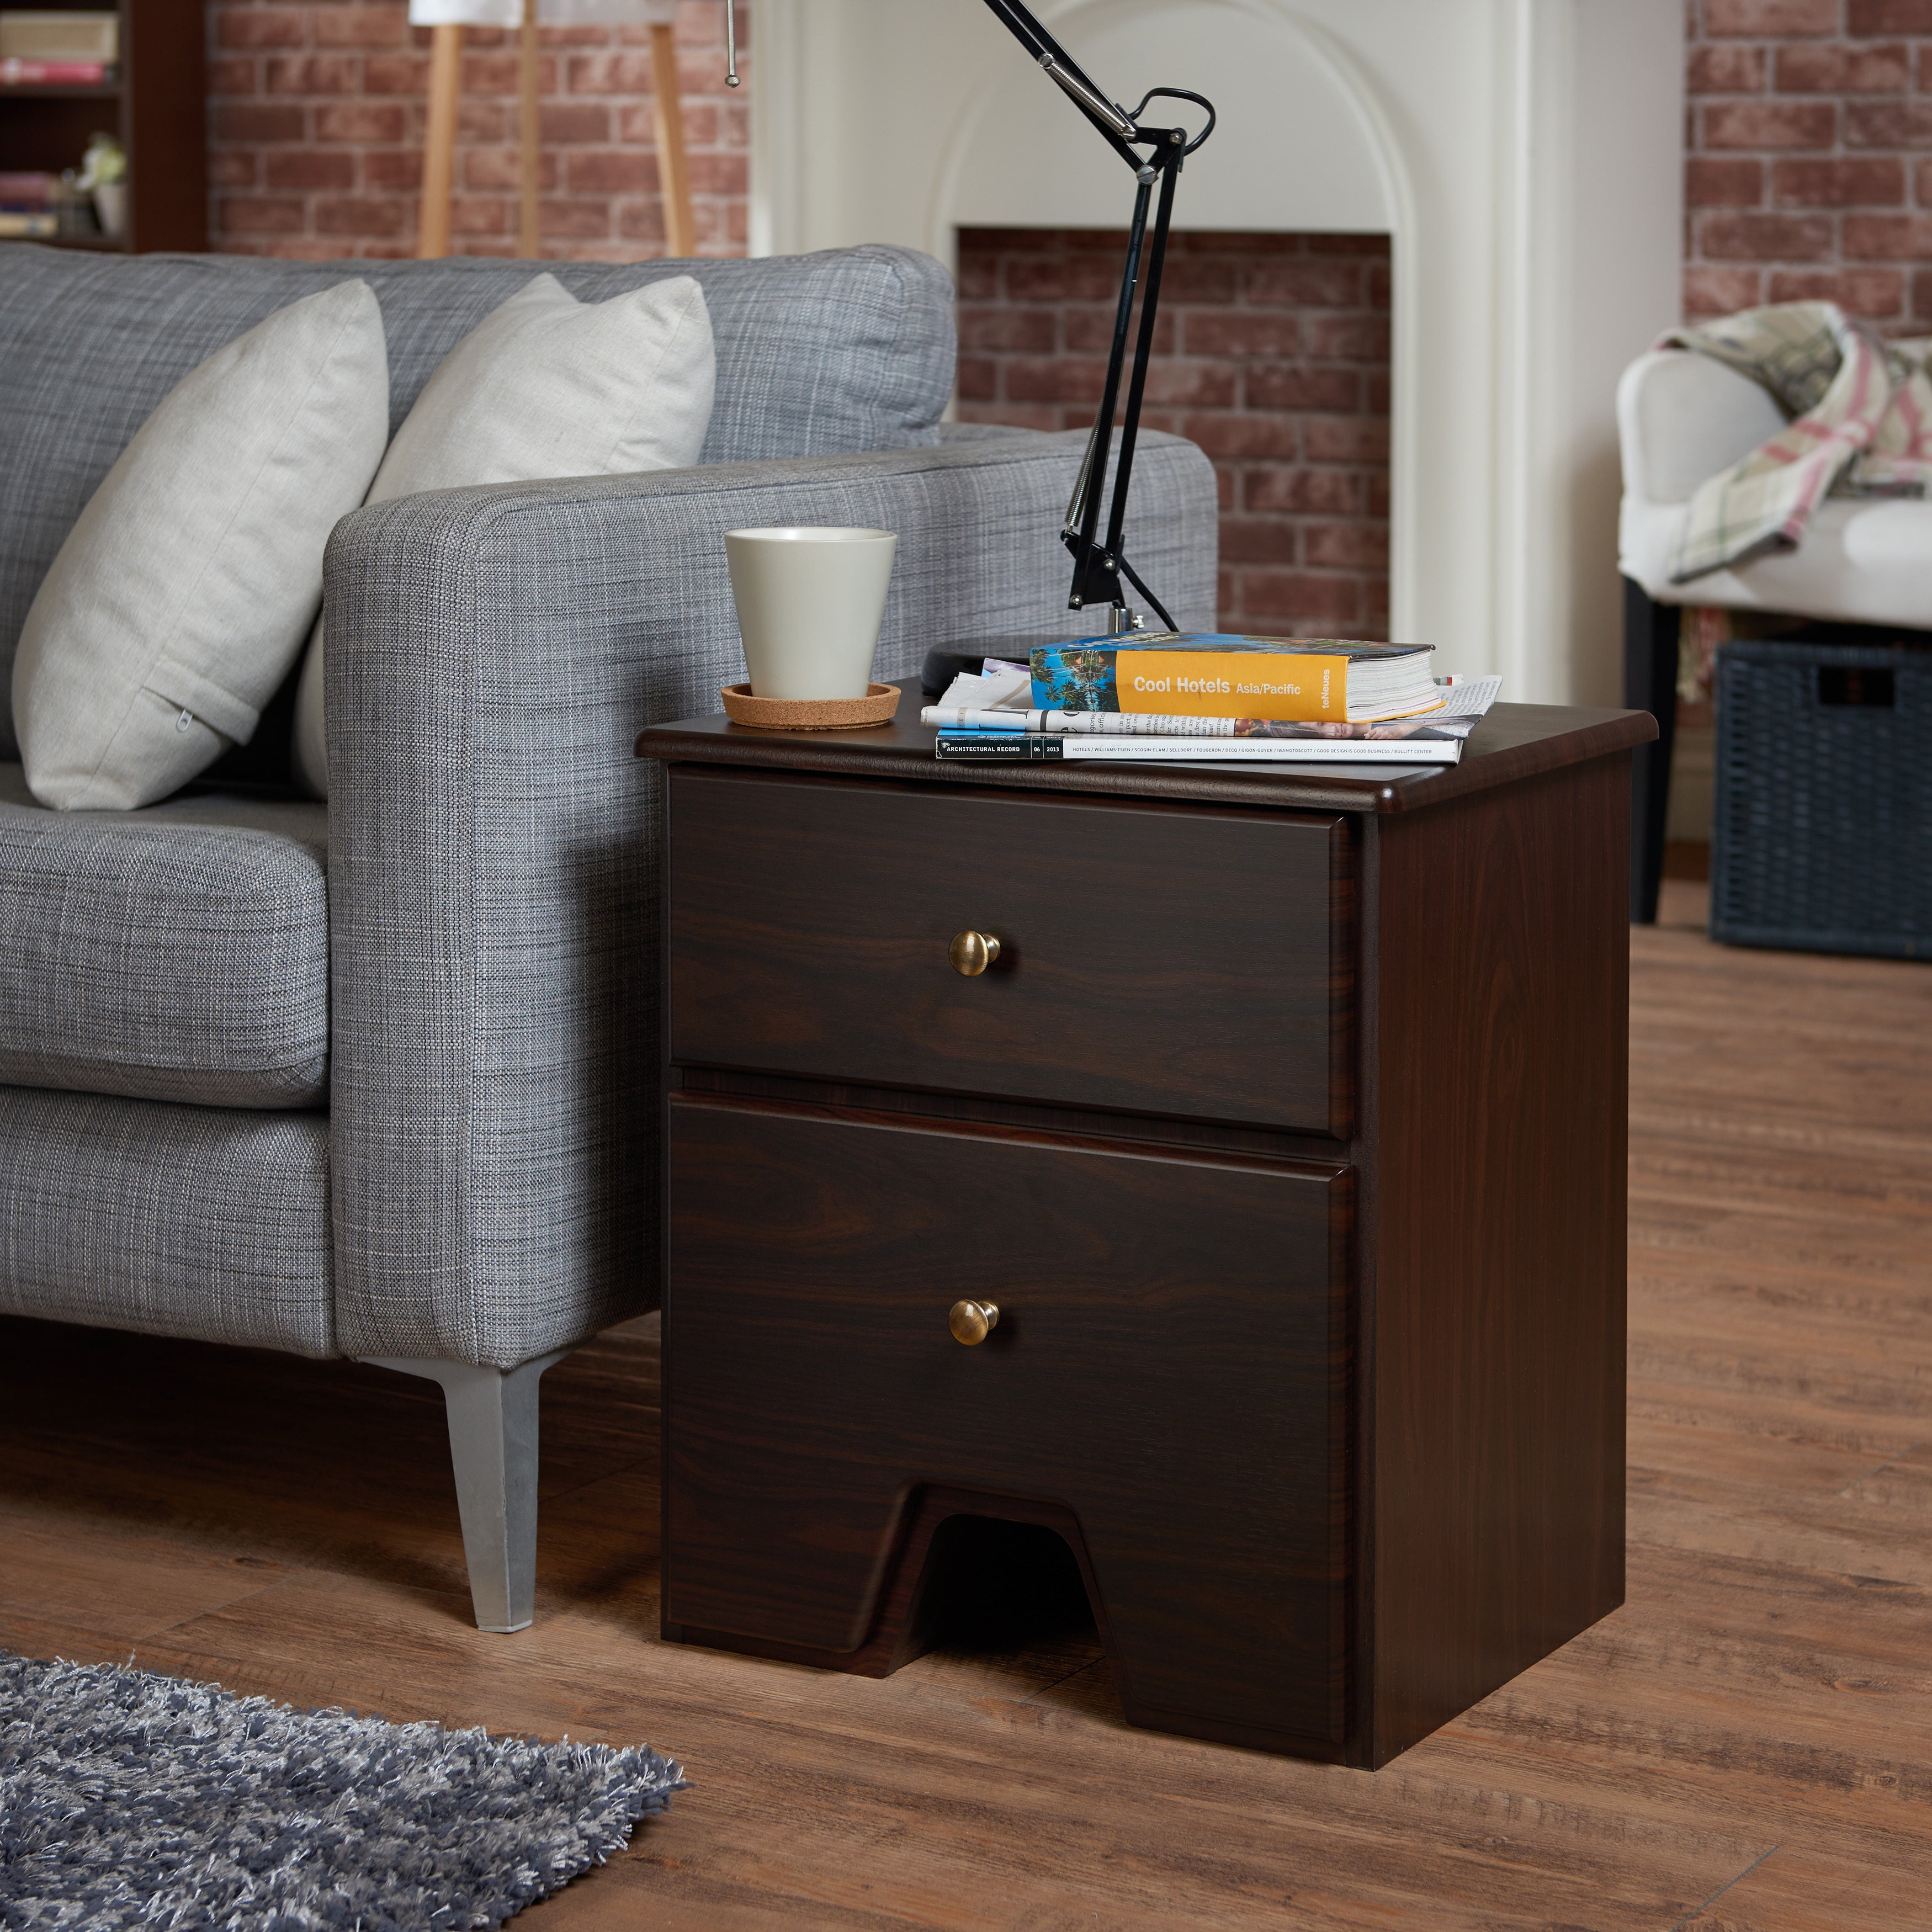 Phenomenal Details About Furniture Of America Tarnell Contemporary 2 Drawer Espresso Espresso N A Ibusinesslaw Wood Chair Design Ideas Ibusinesslaworg